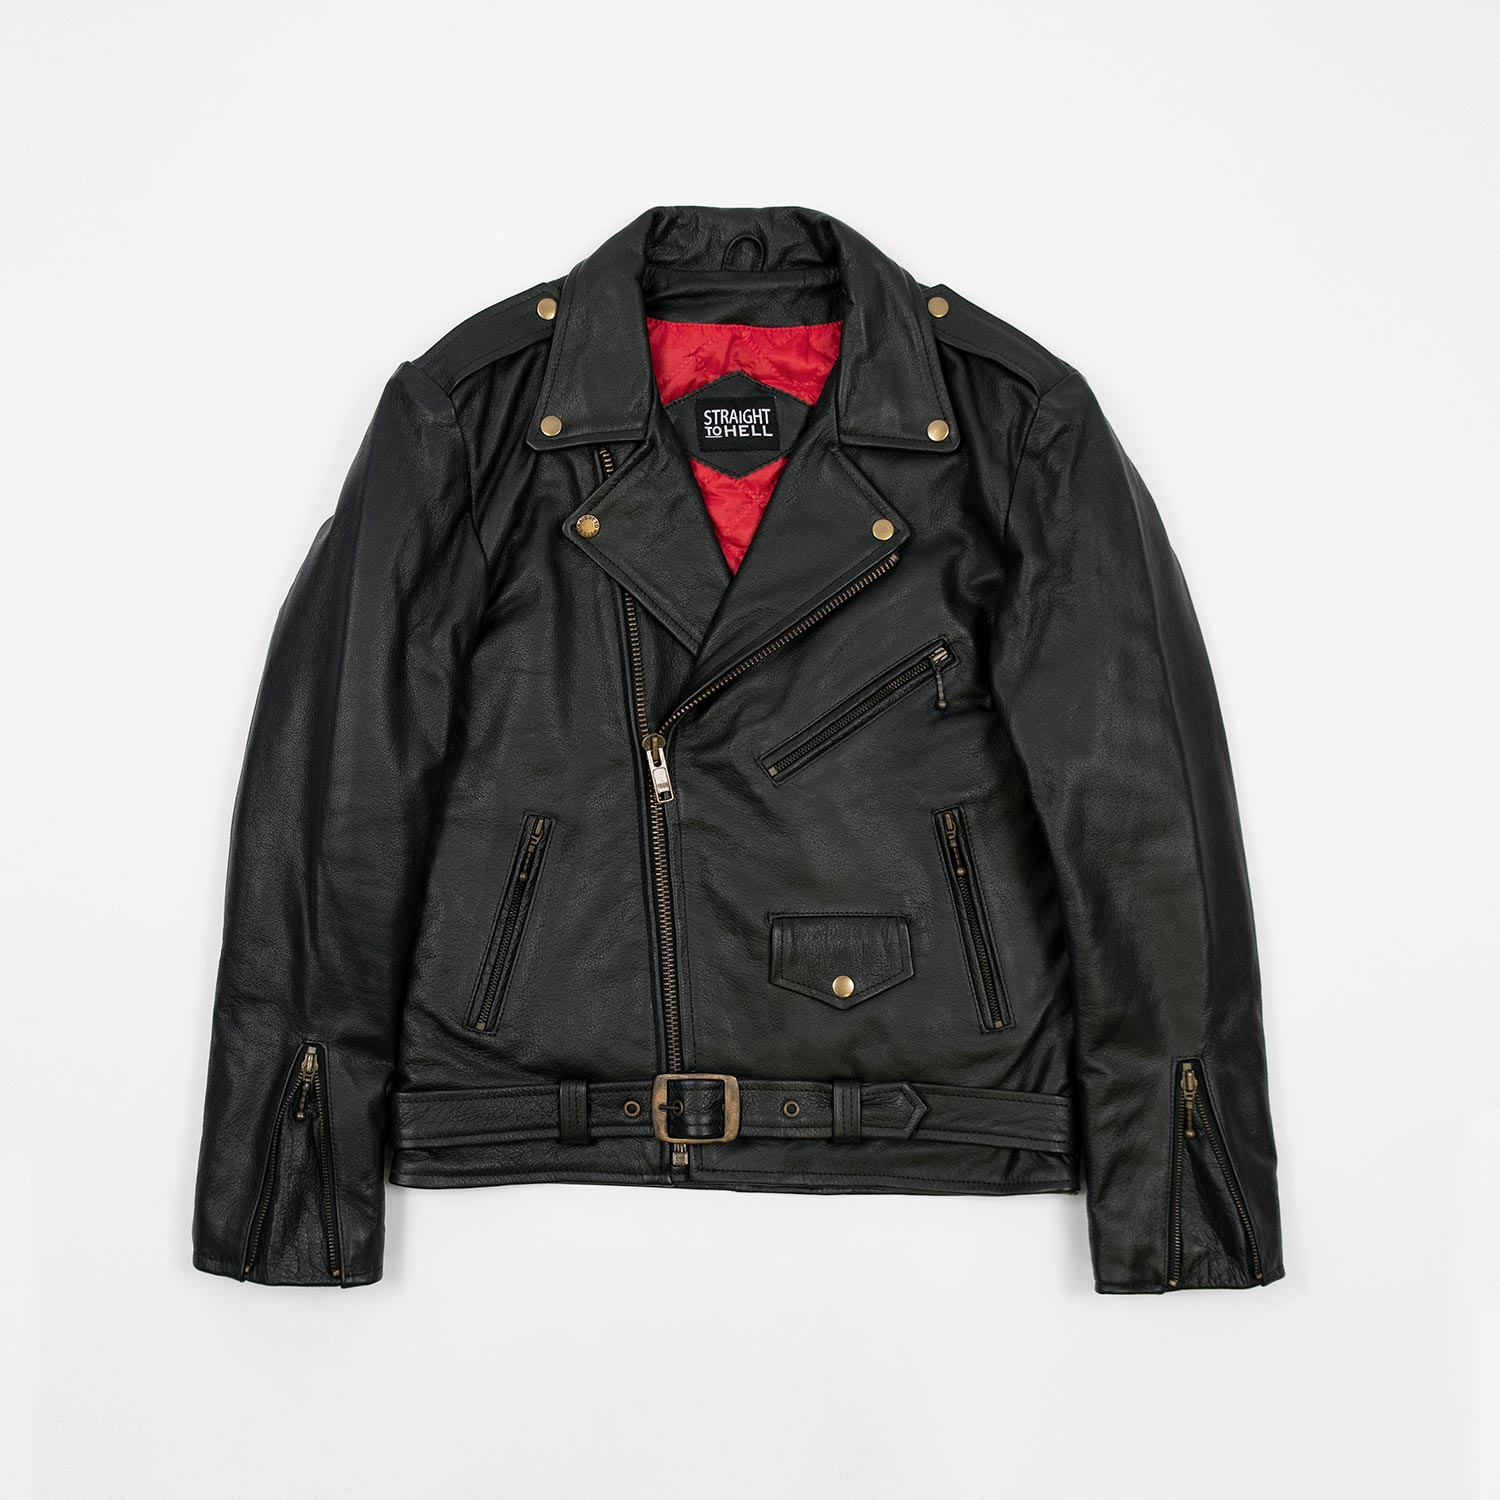 straight To hell brass leather jacket